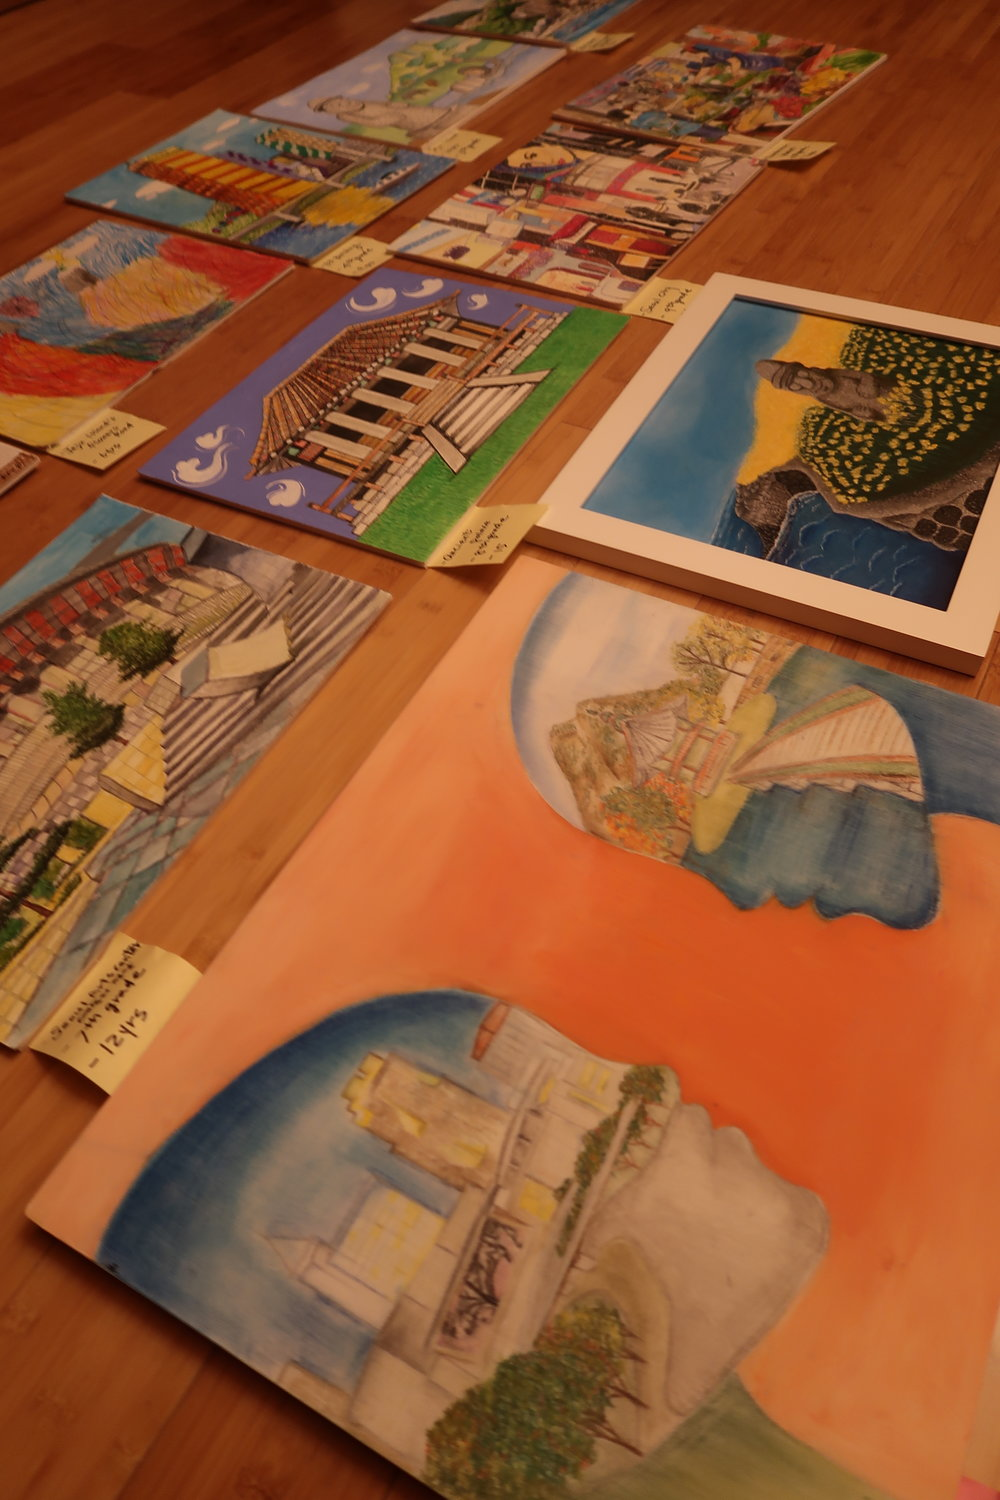 Art Contest Submissions on Display -